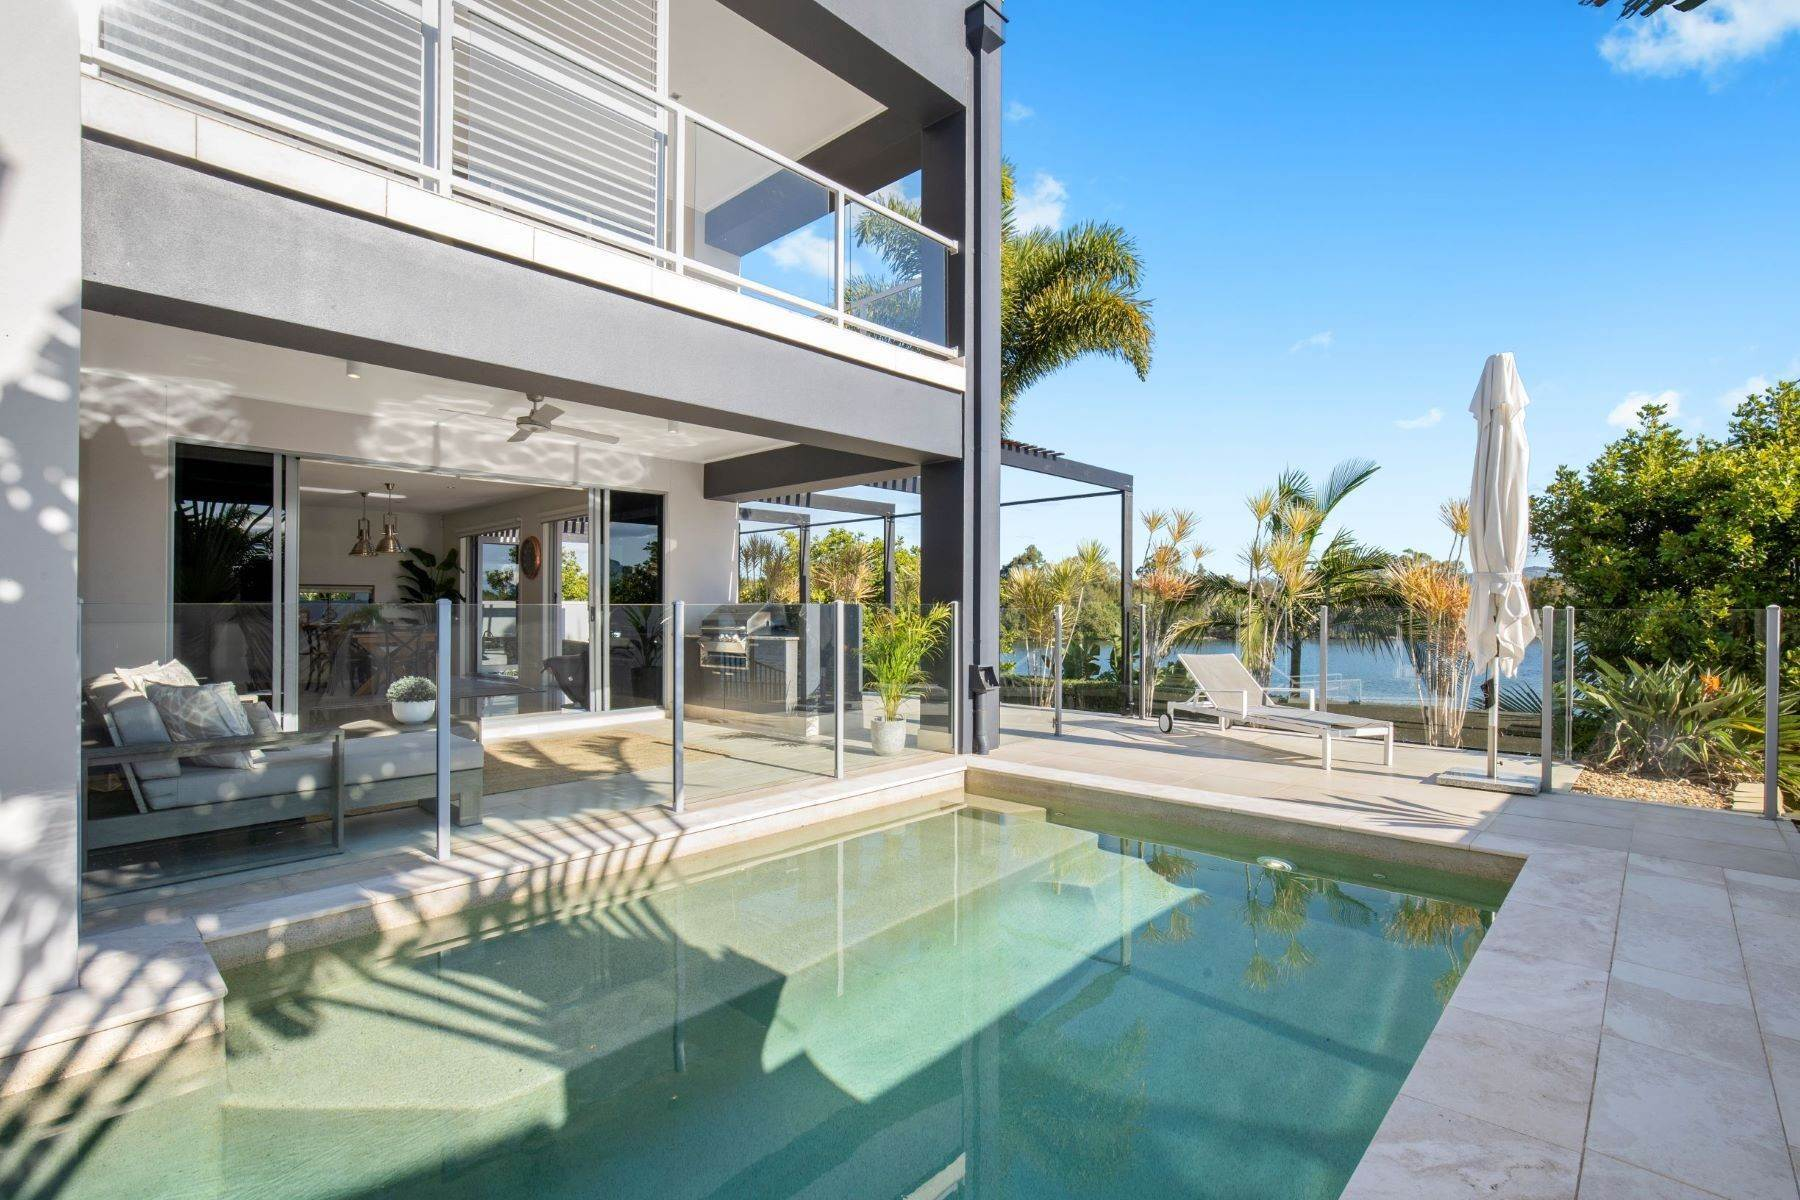 Single Family Homes for Sale at Luxury Lakeside Family Home on Prestigious Emerald Island 5068 Emerald Island Drive Other Queensland, Queensland 4211 Australia